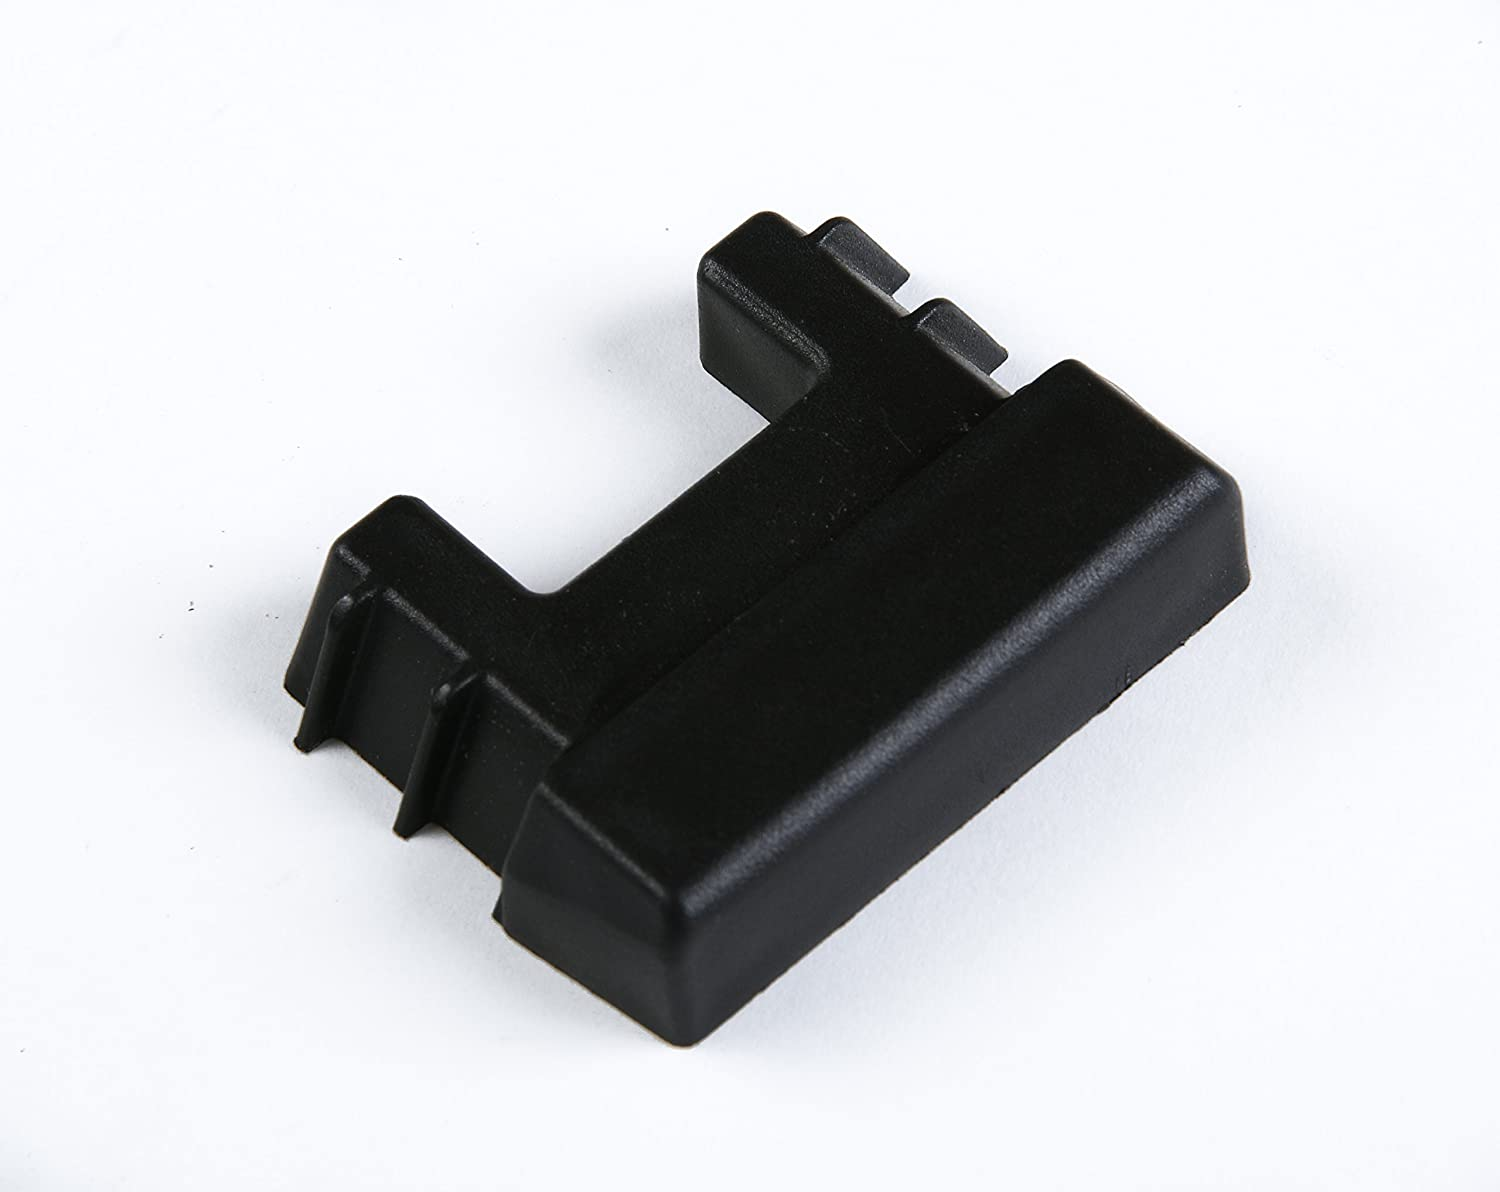 Durable Black Plastic End Protector Covers for Vertical E Track Tie-Down Rails E-Tracks NOT Included 10 E Track Tie-Down Rail End Caps